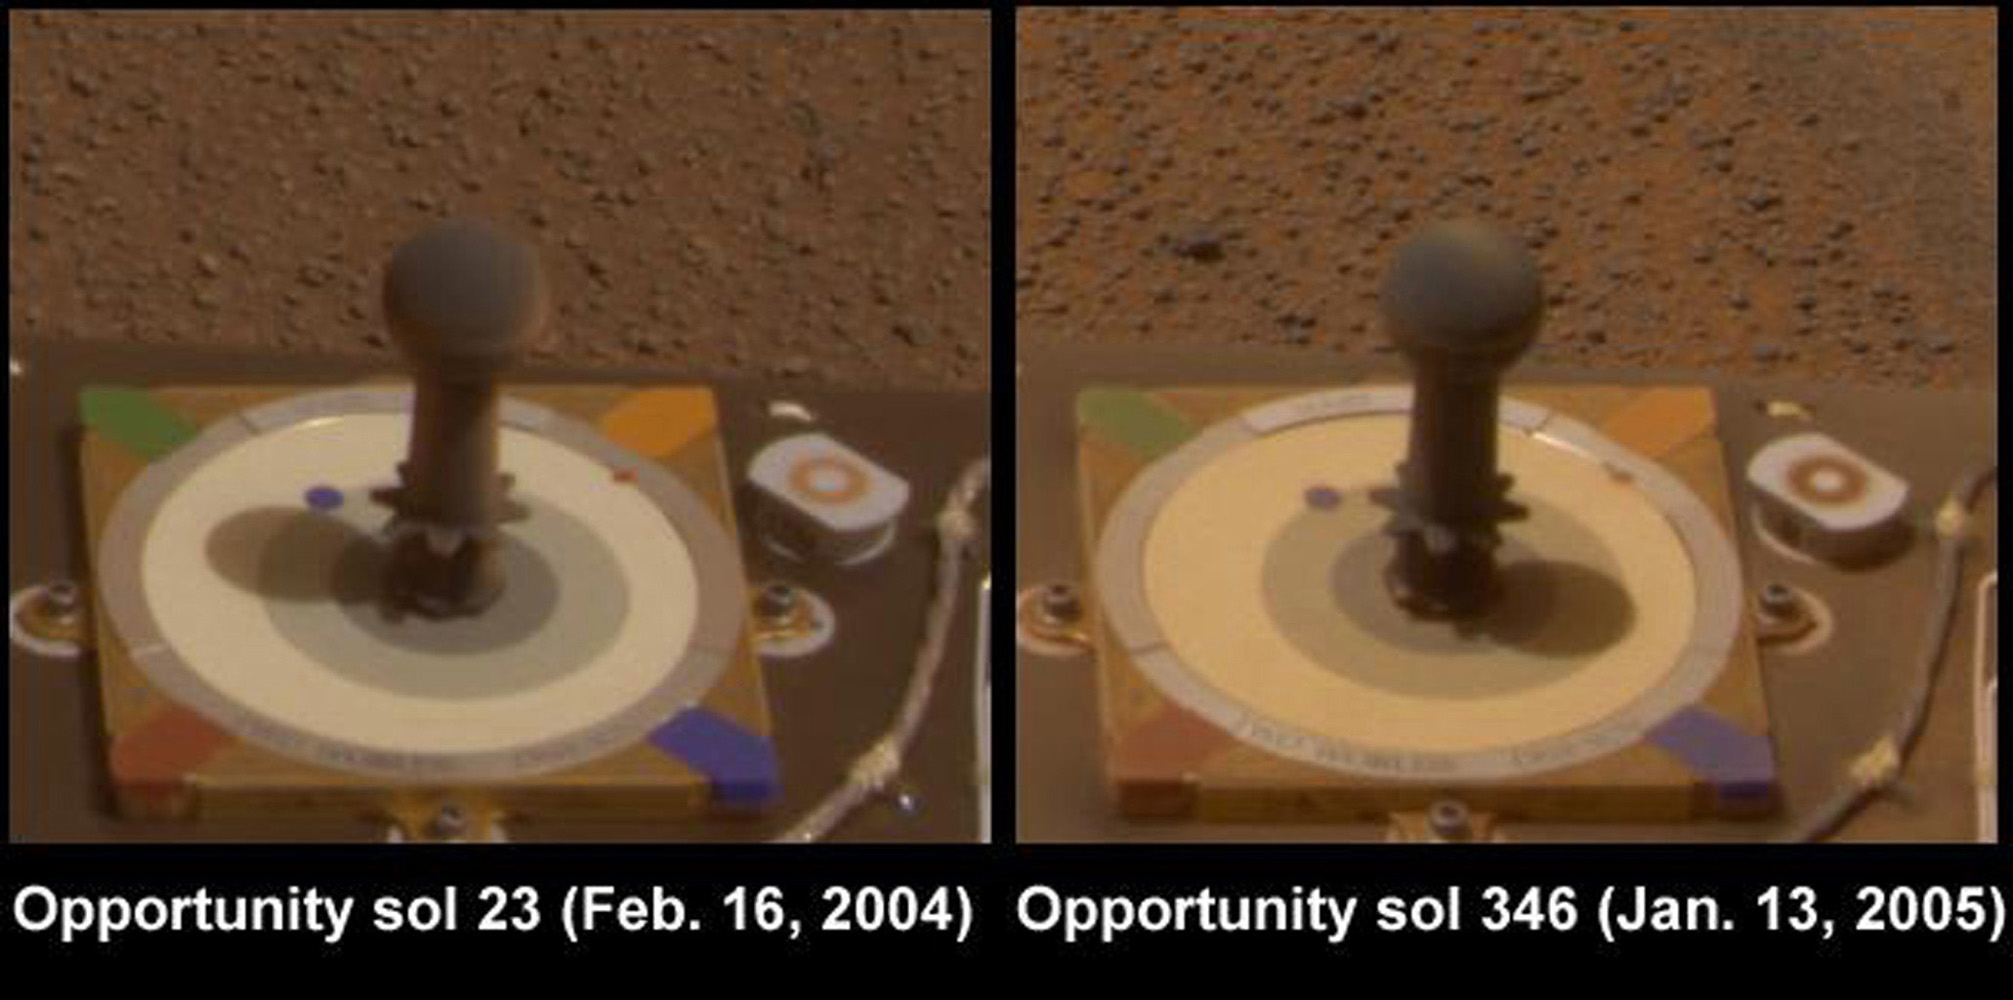 This image from NASA's Mars Exploration Rover Opportunity compares the dust that accumulated on the calibration camera on Feb. 16, 2004 and Jan. 13, 2005. The the surfaces had become only mildly dusty compared to shortly after landing.